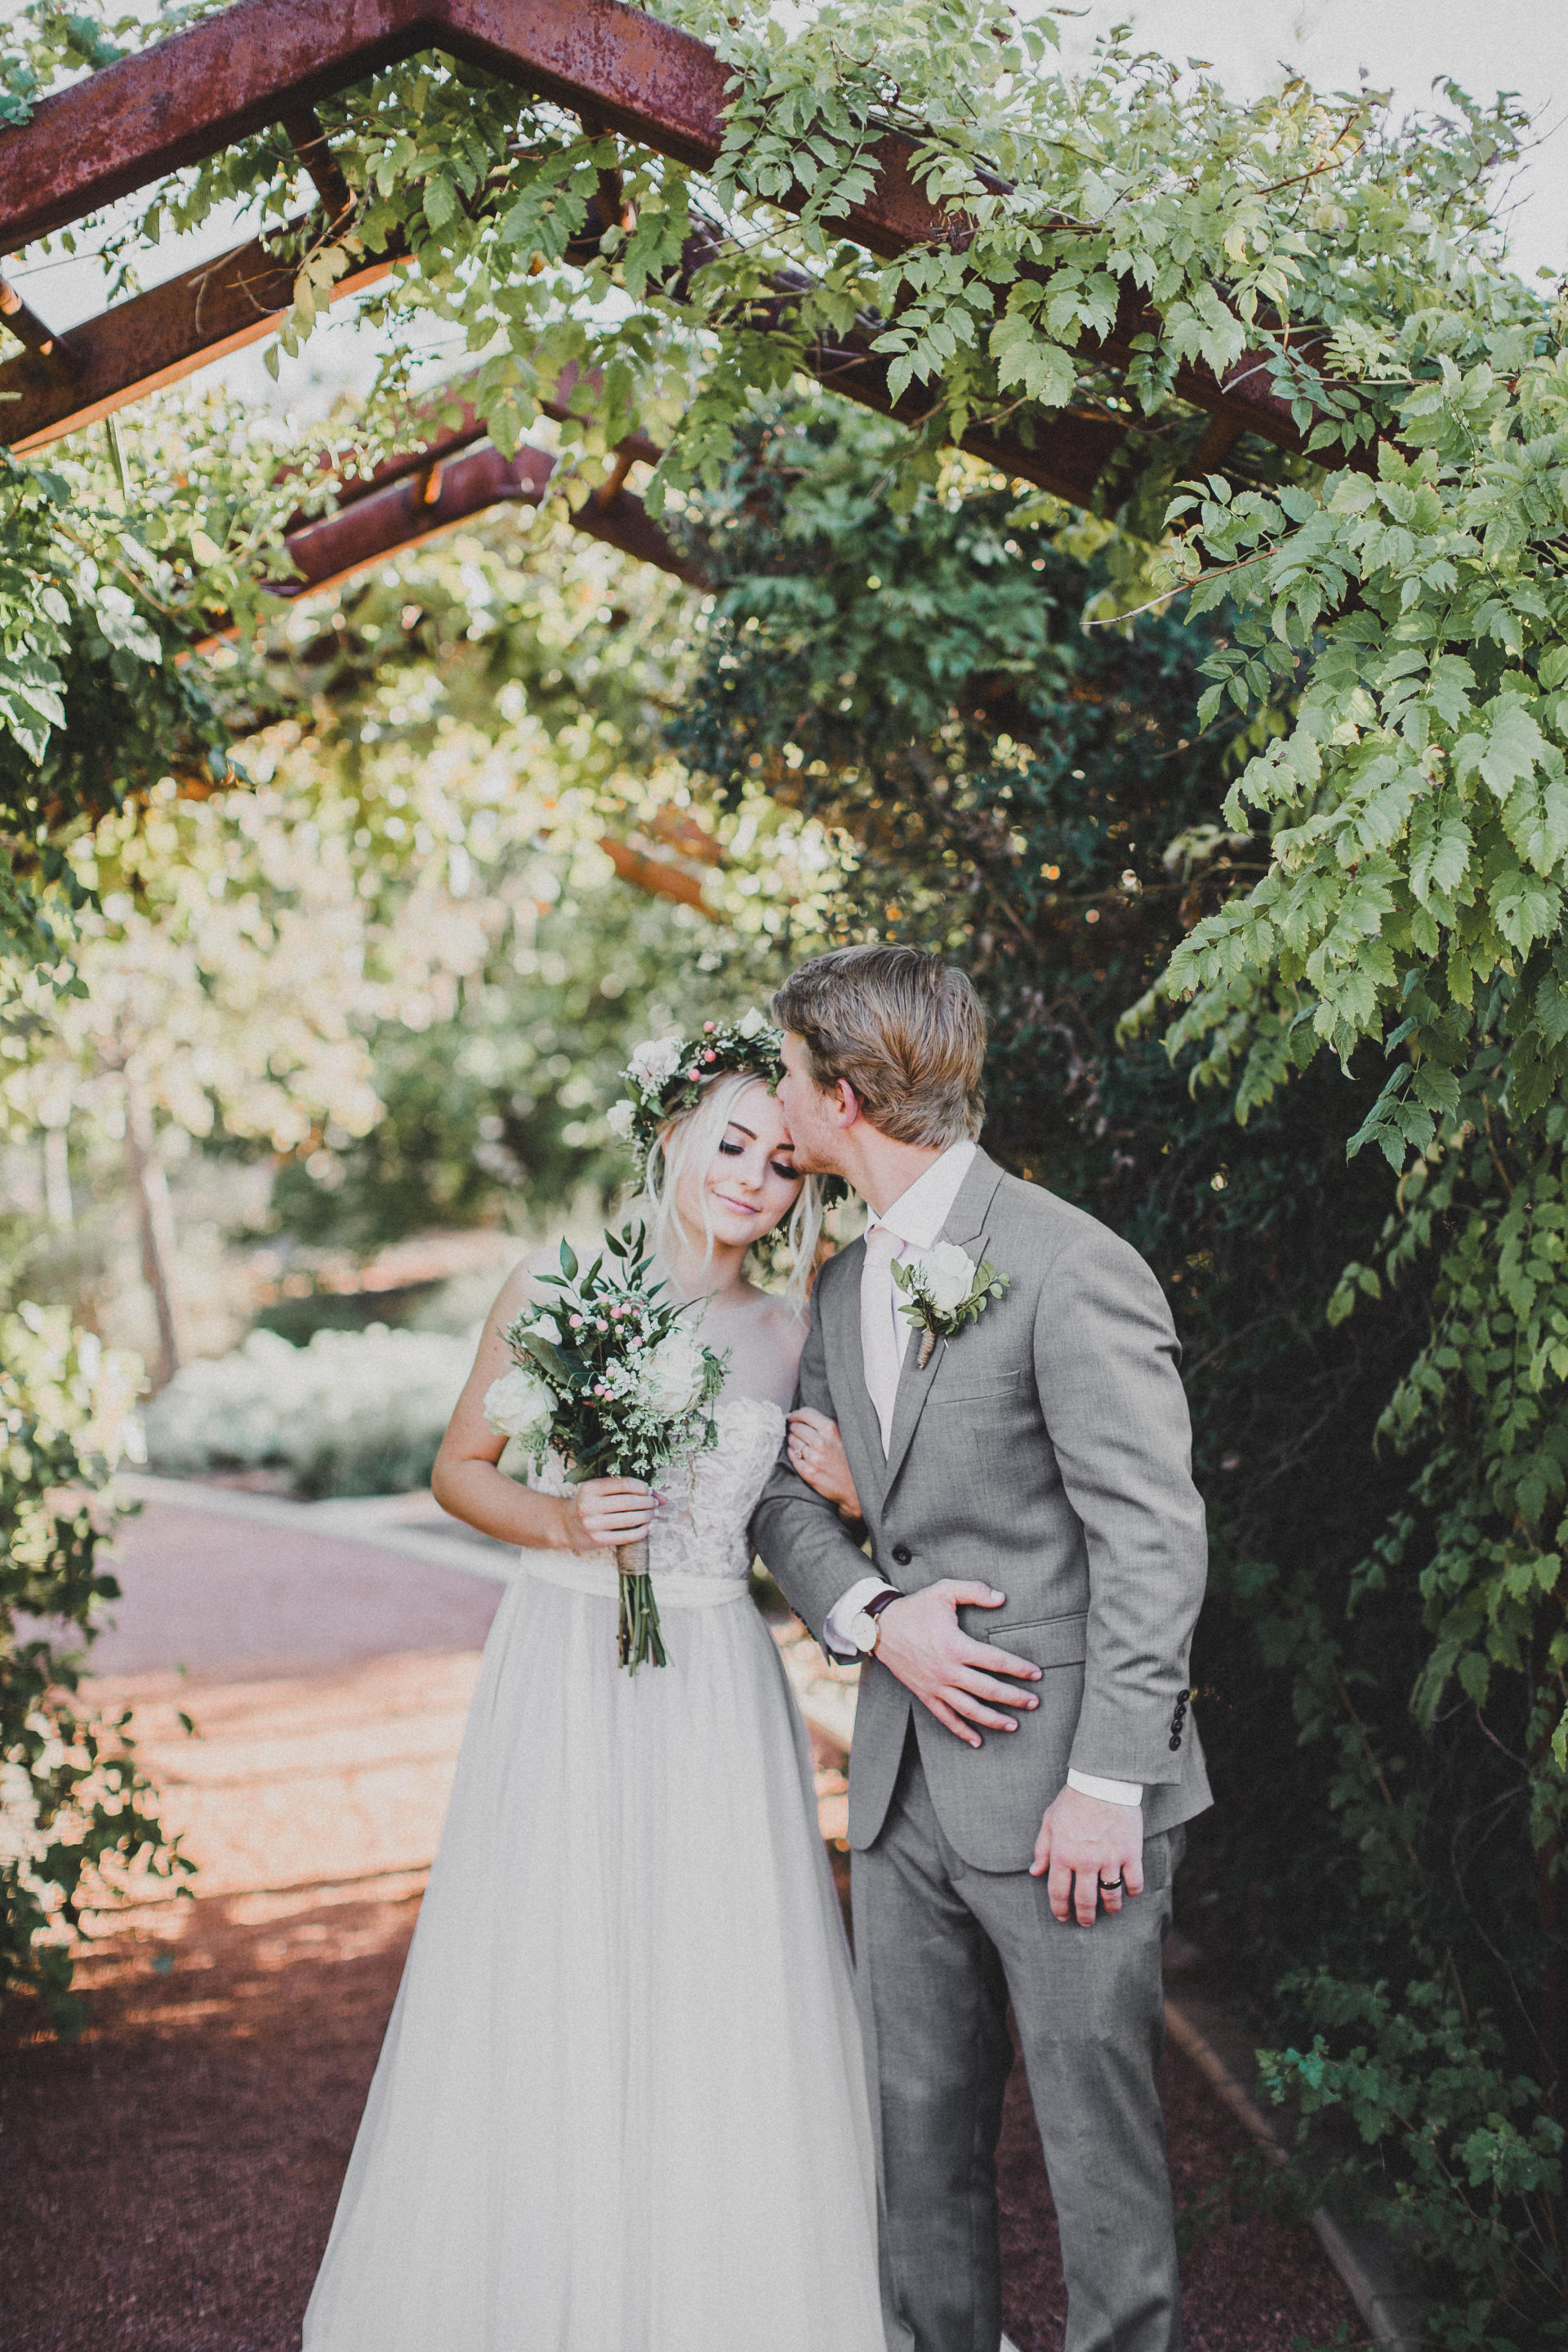 Aspyn+Parker-weddingday_tyfrenchphoto-5552